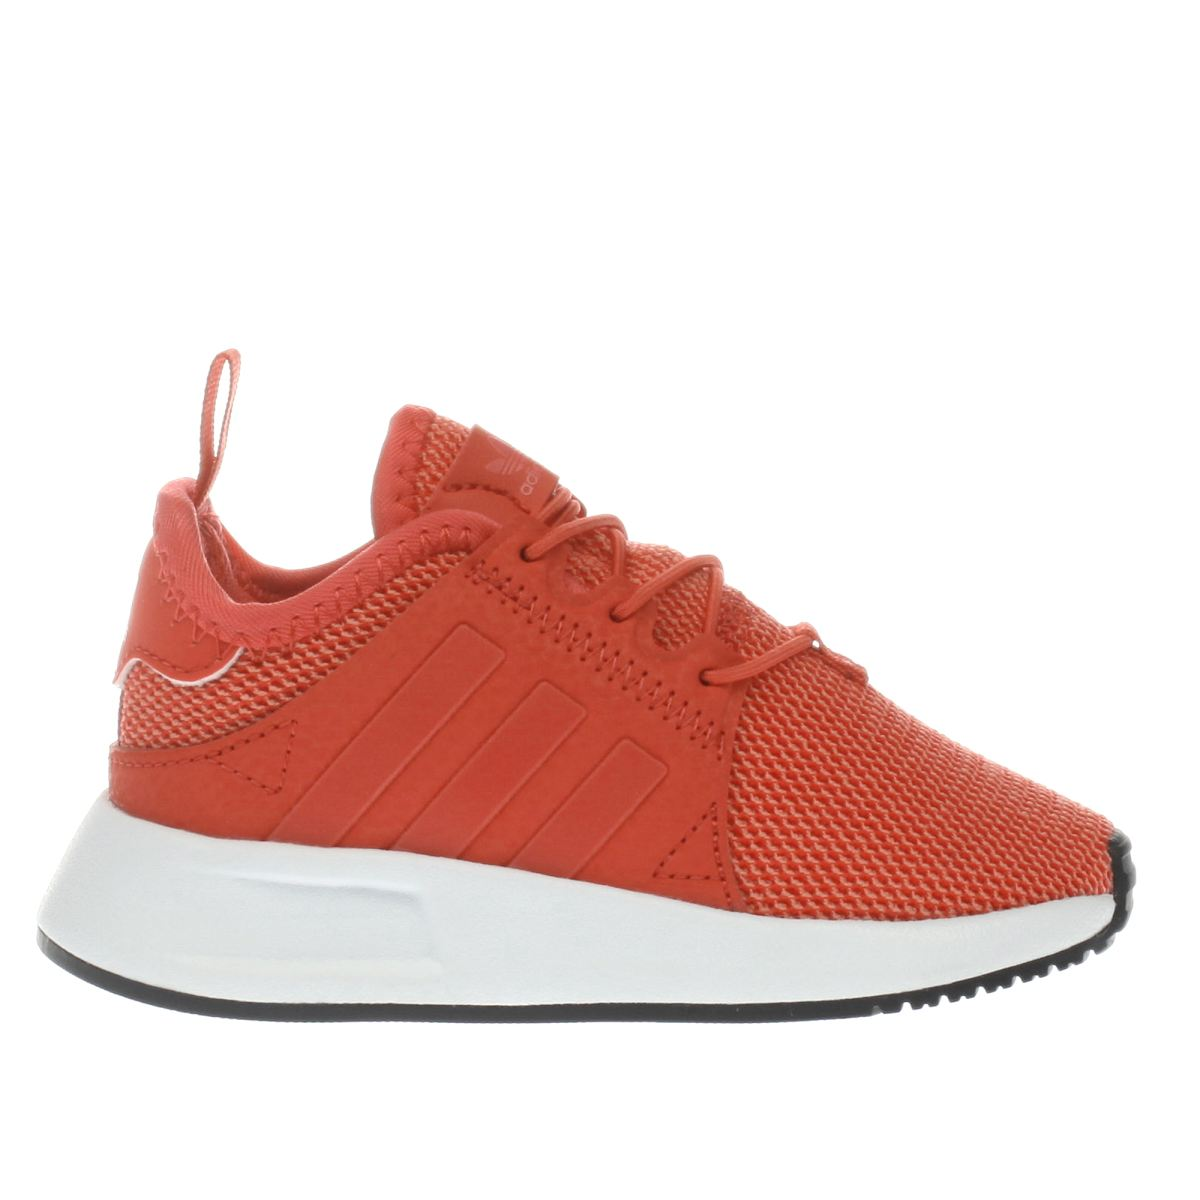 adidas coral red x_plr tdlr Girls Toddler Trainers